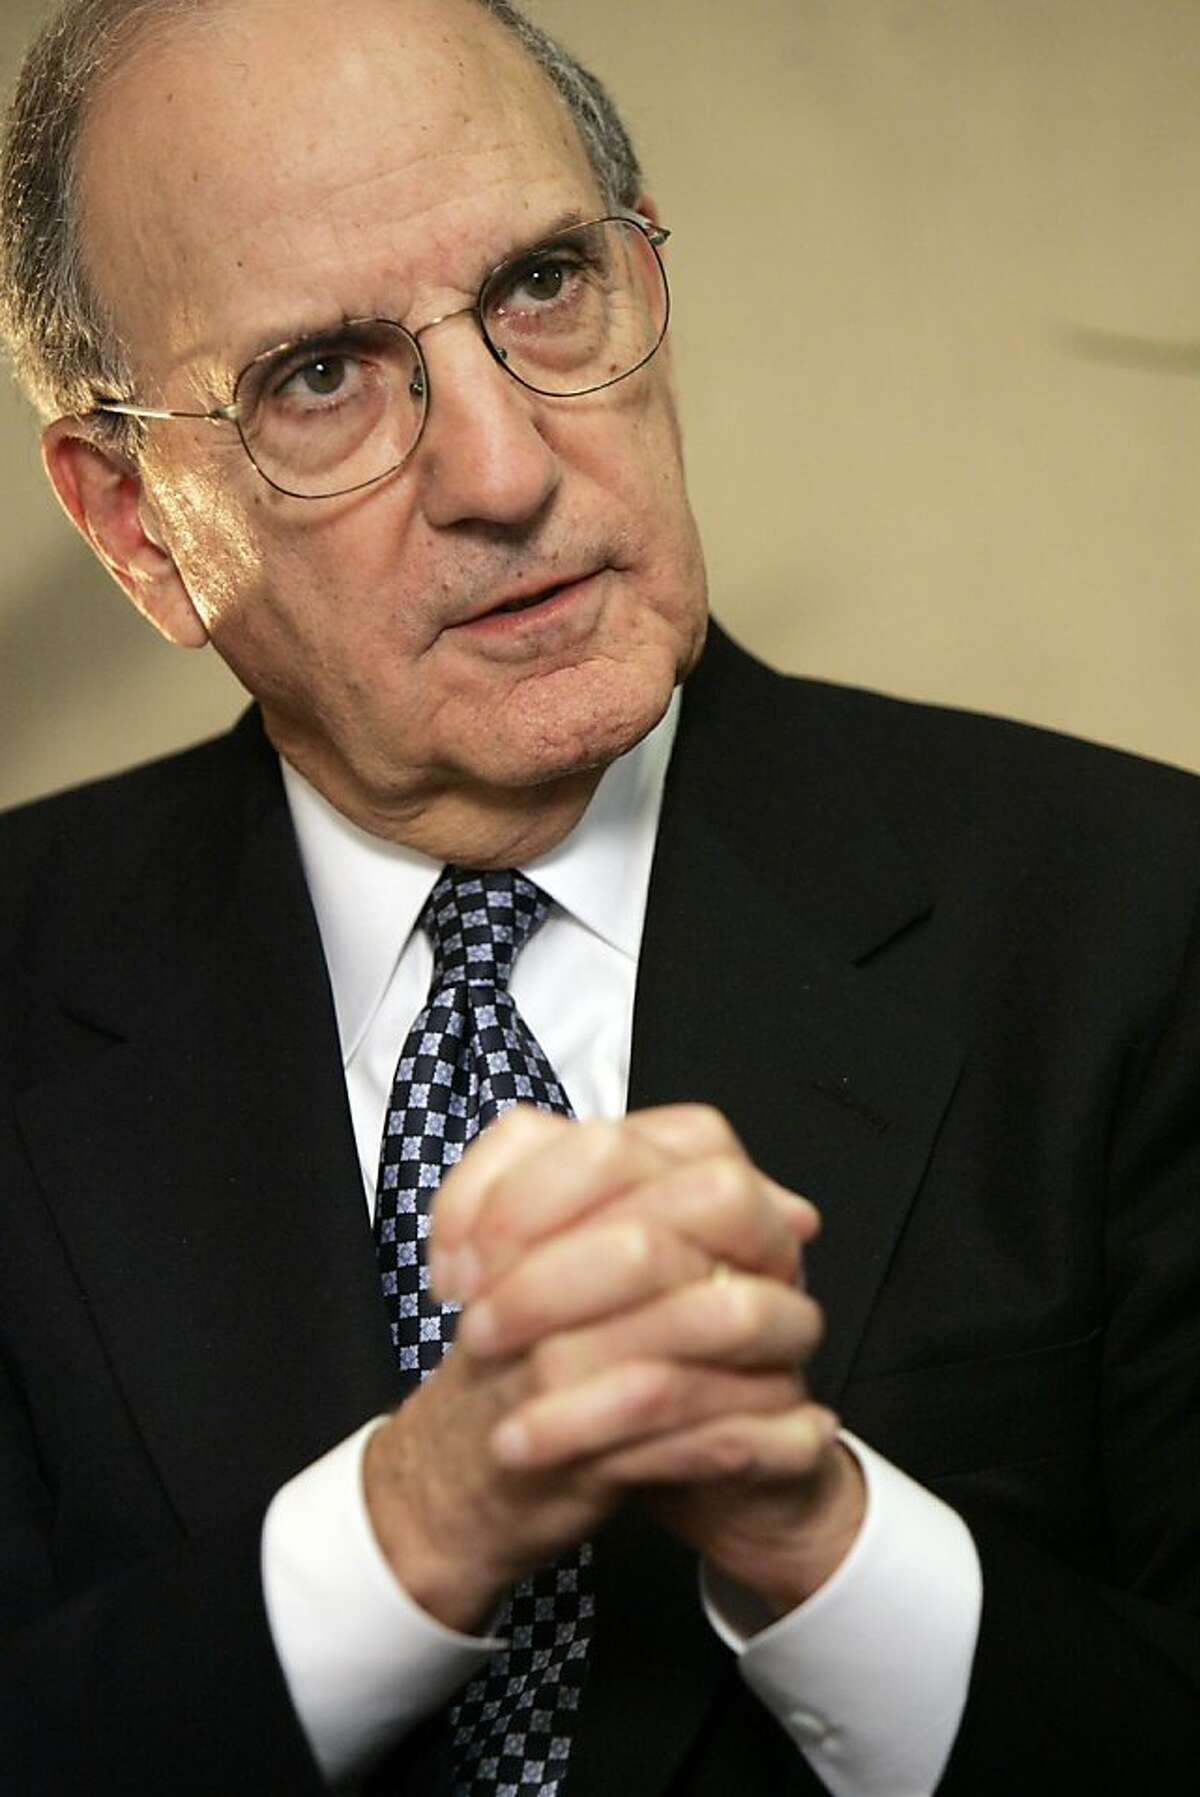 Former Senate Majority Leader George Mitchell is interviewed by the Associated Press, in New York Friday Dec. 14, 2007.